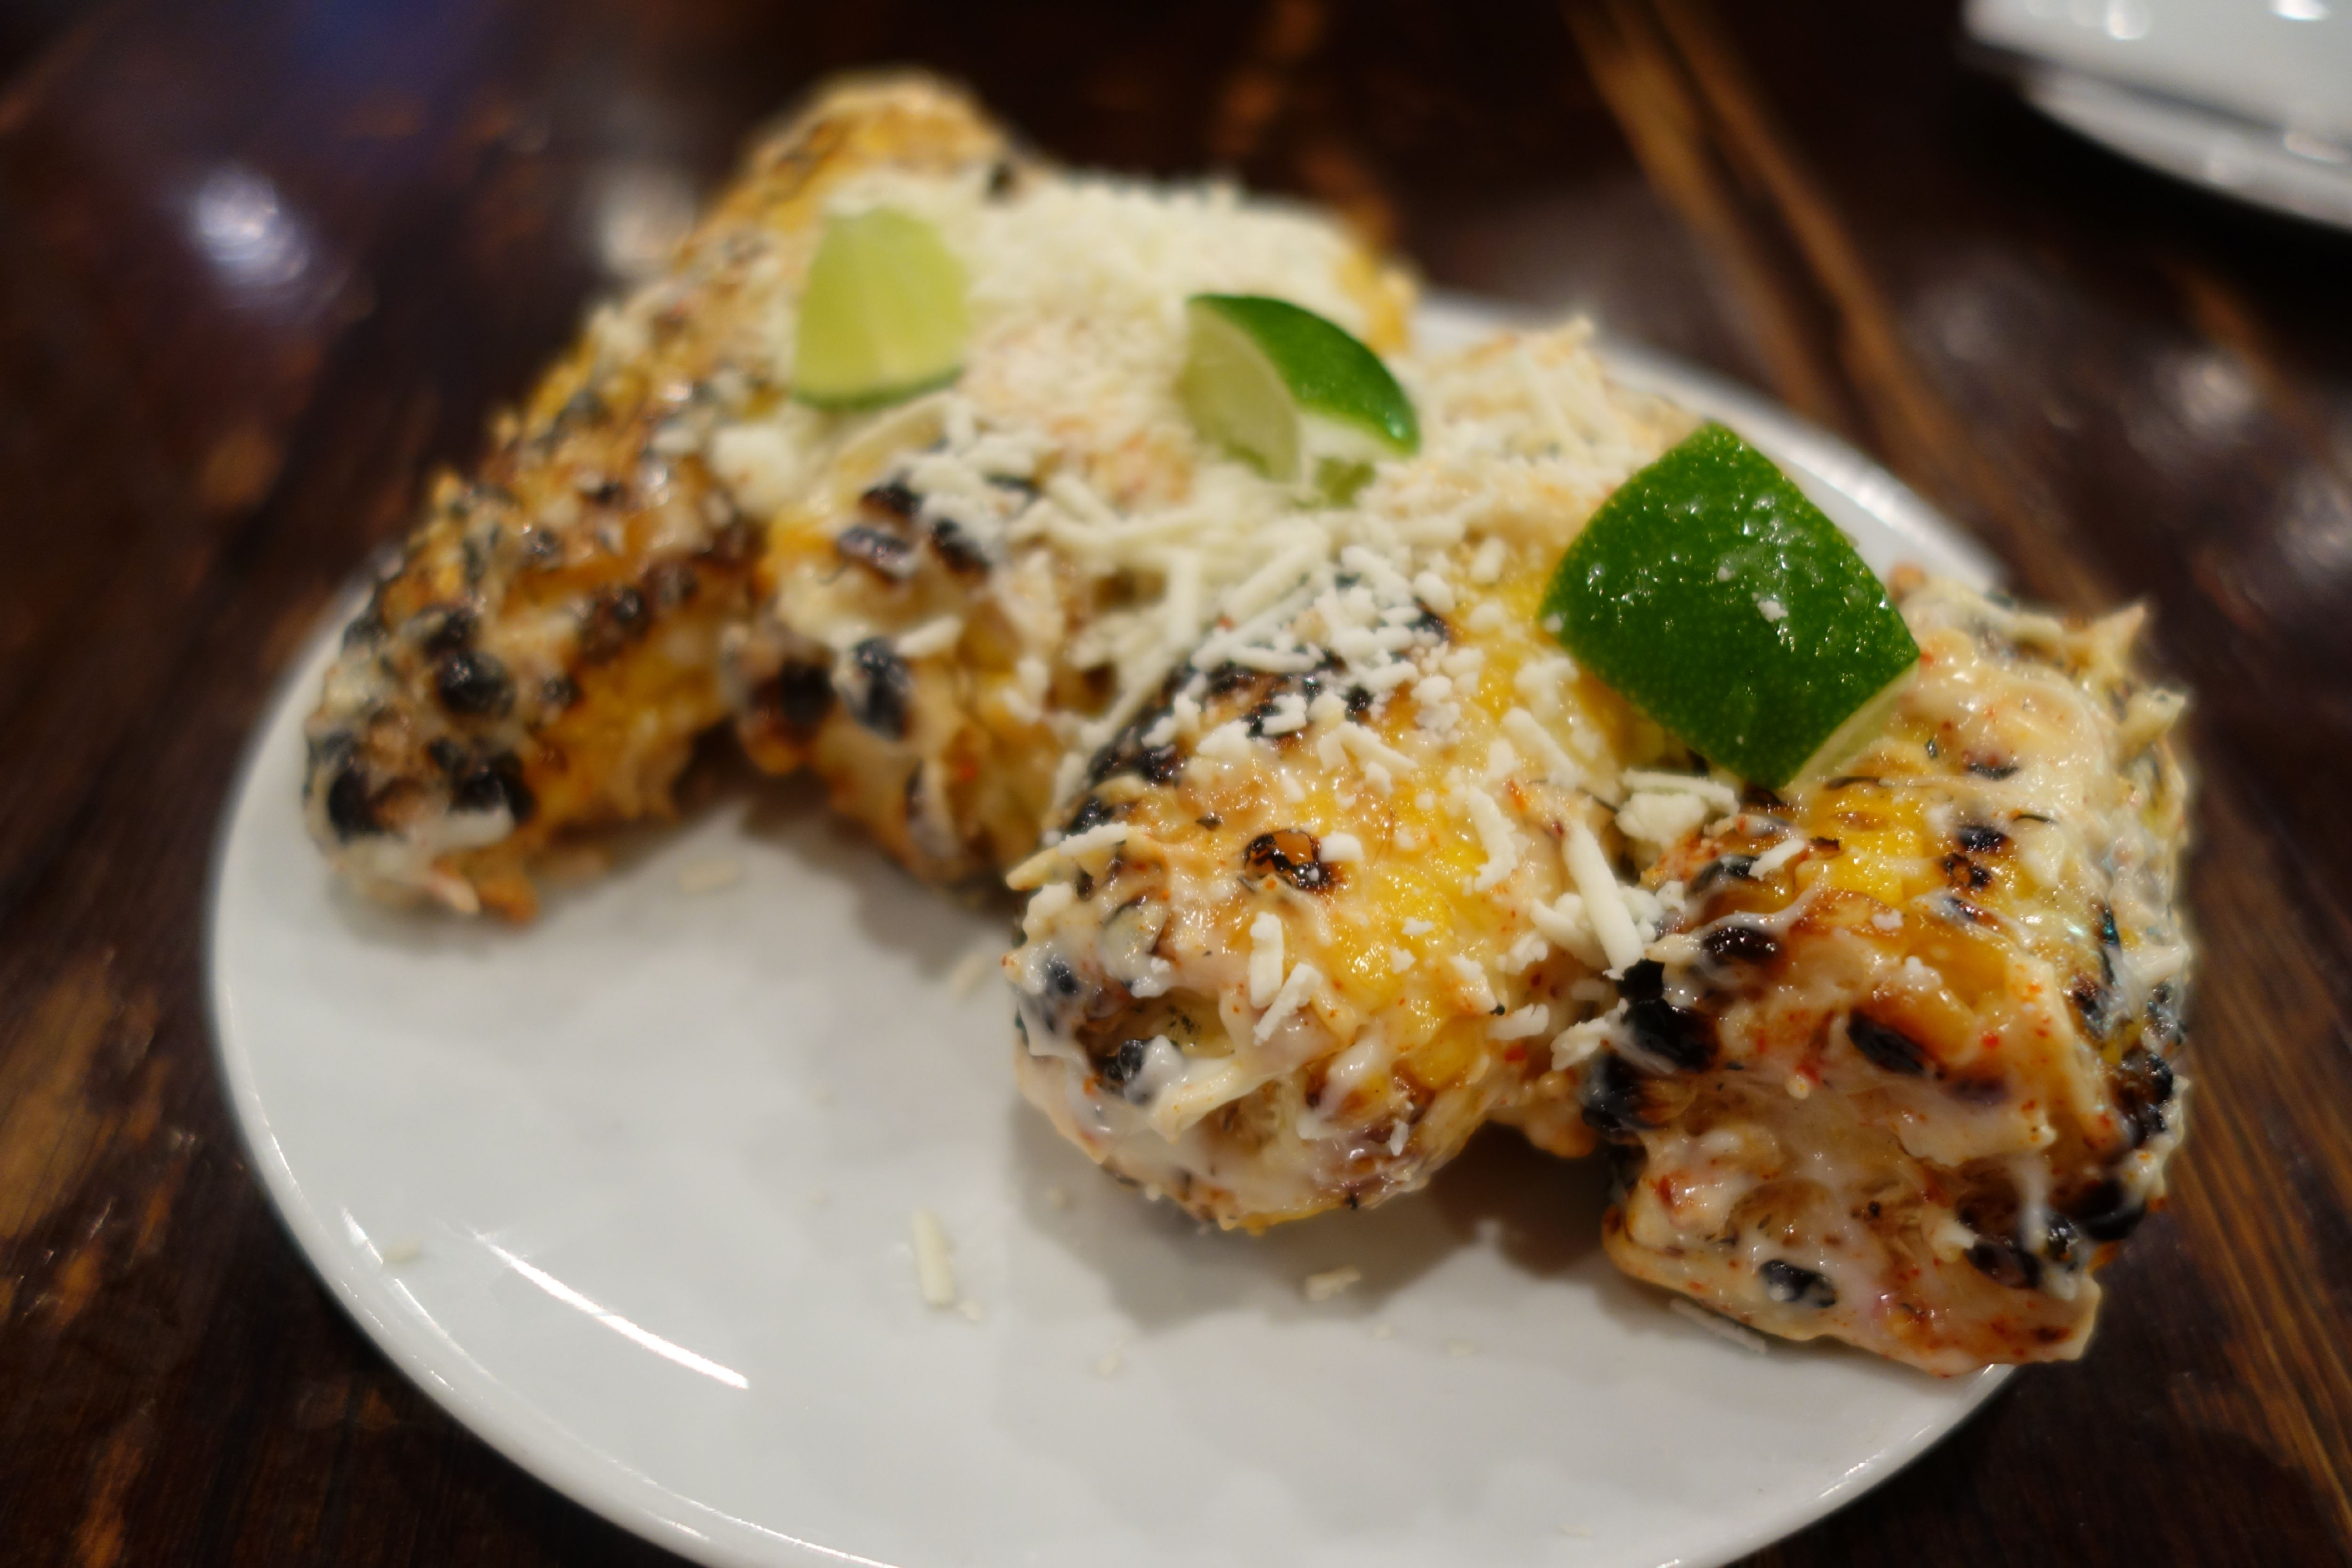 ... – Grilled Corn with Alioli, Lime, Espelette Pepper and Aged Cheese